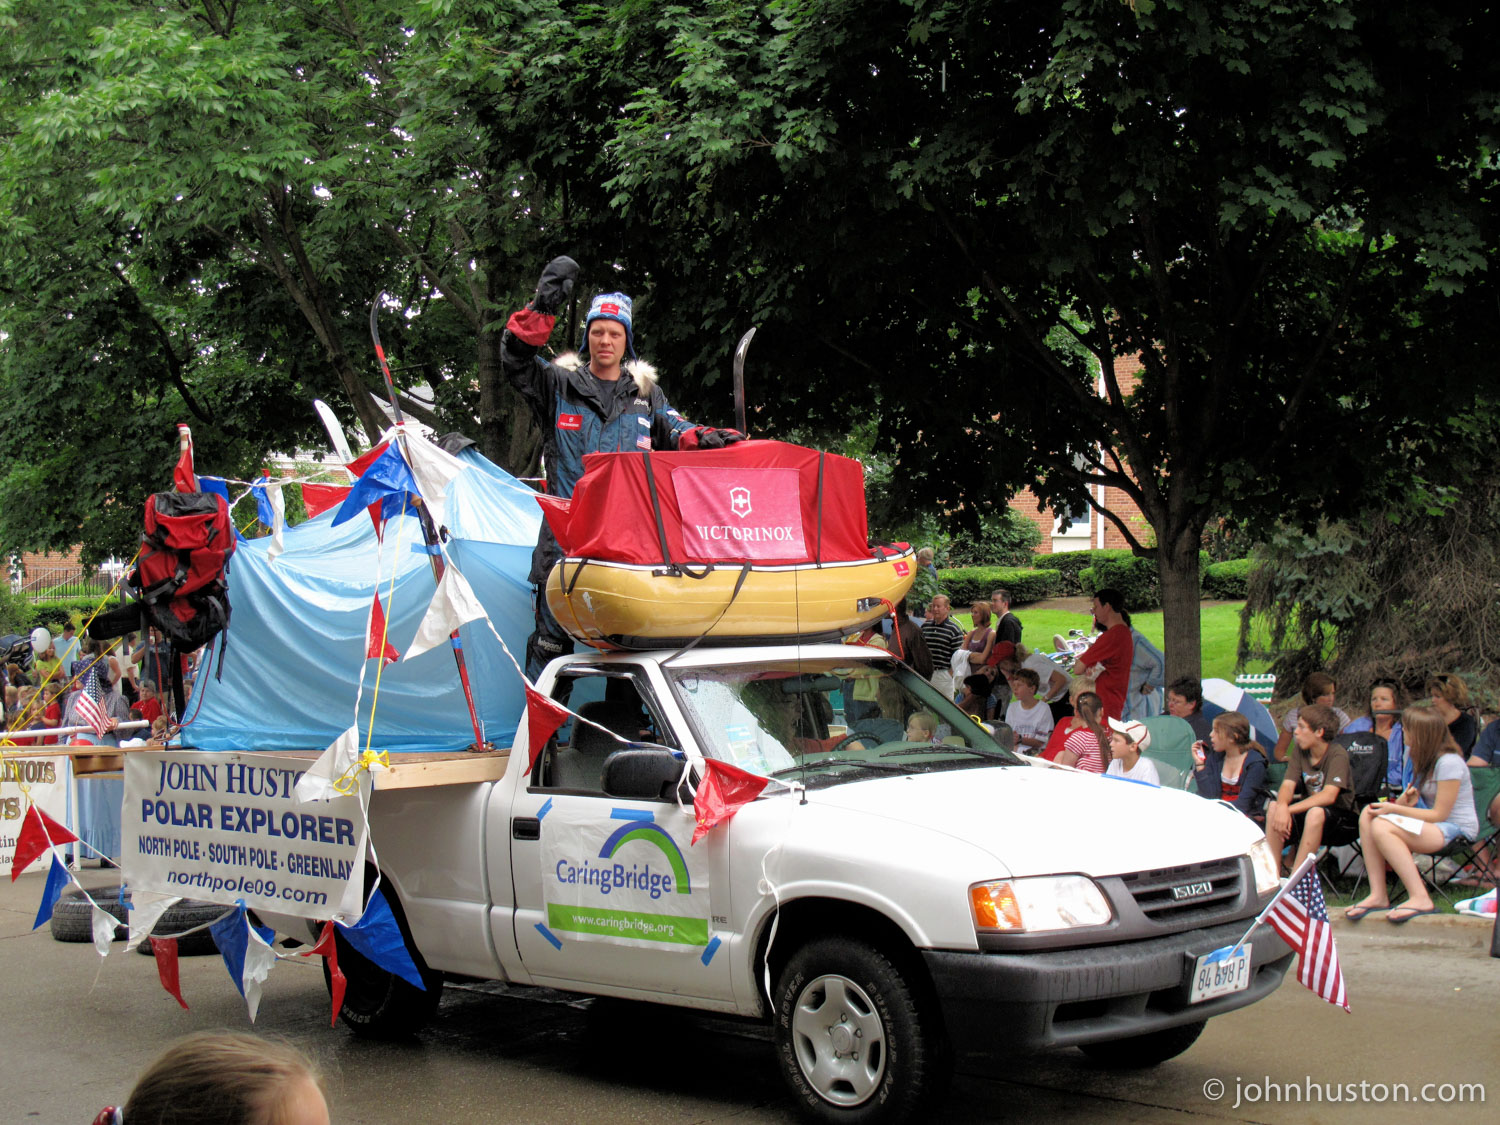 John in his hometown 4th of July parade.